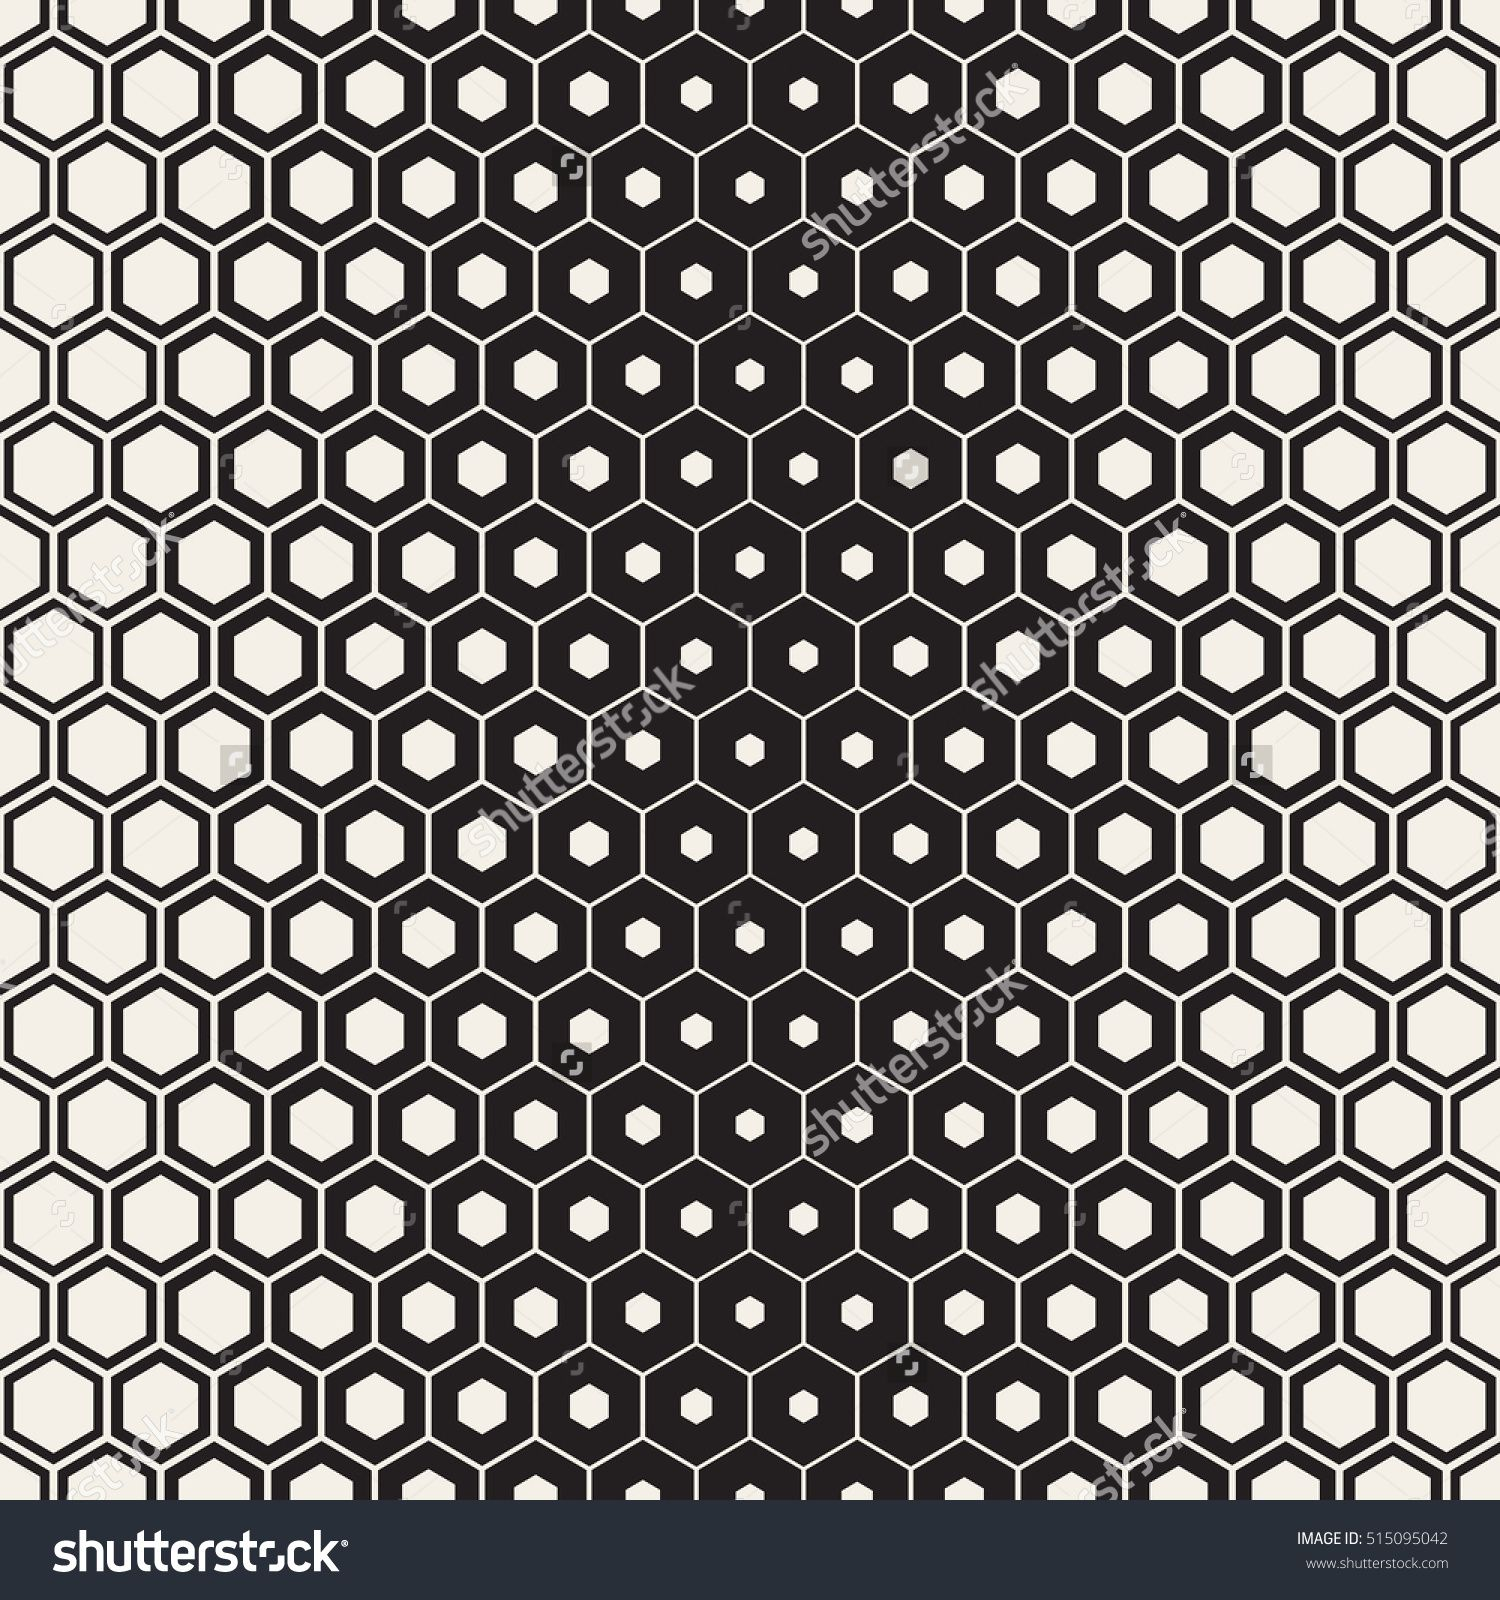 Vector Seamless Halftone HoneyComb Gradient Pattern Abstract